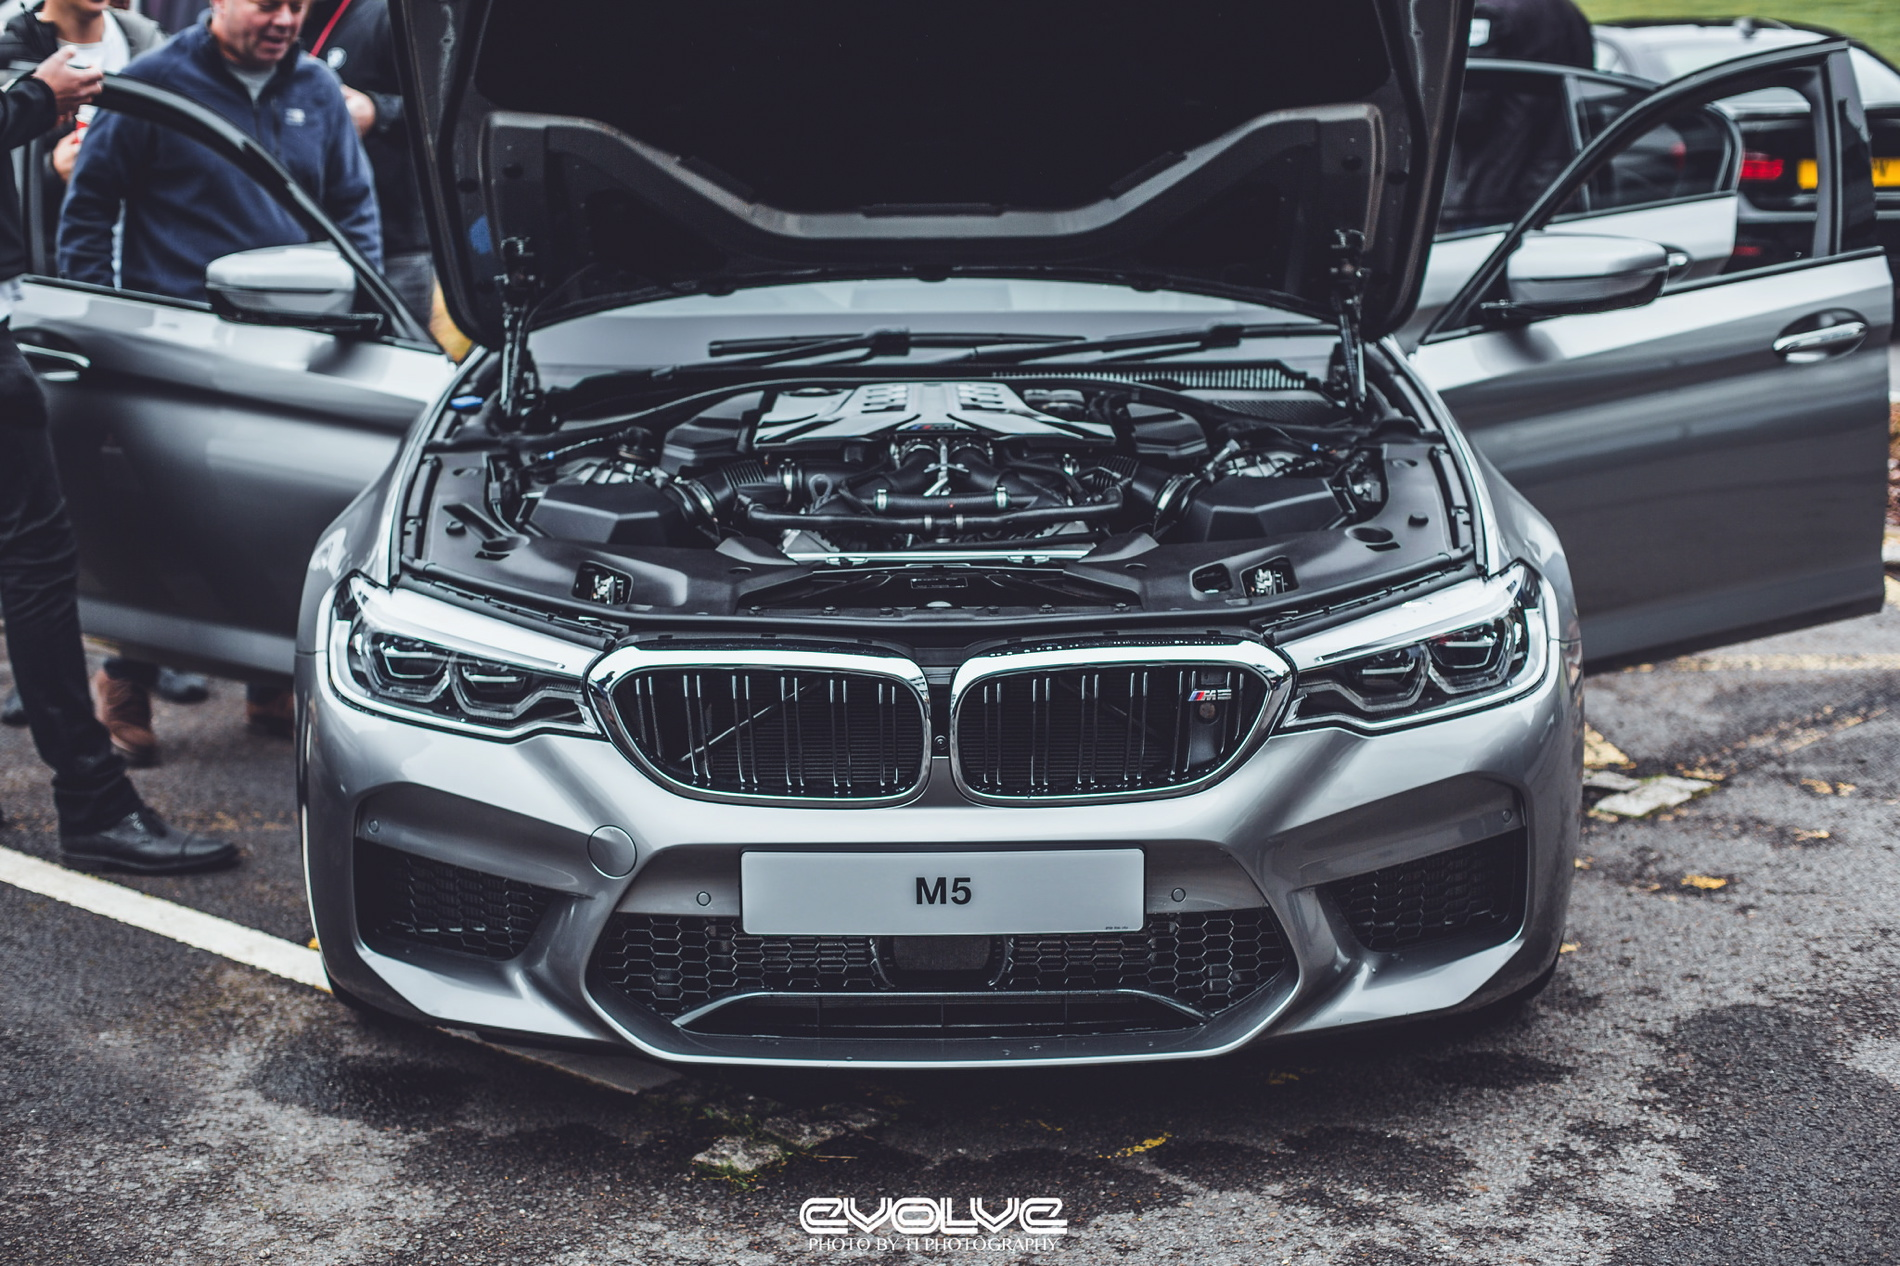 F90 Bmw M5 In Donington Grey Metallic Looks Stunning